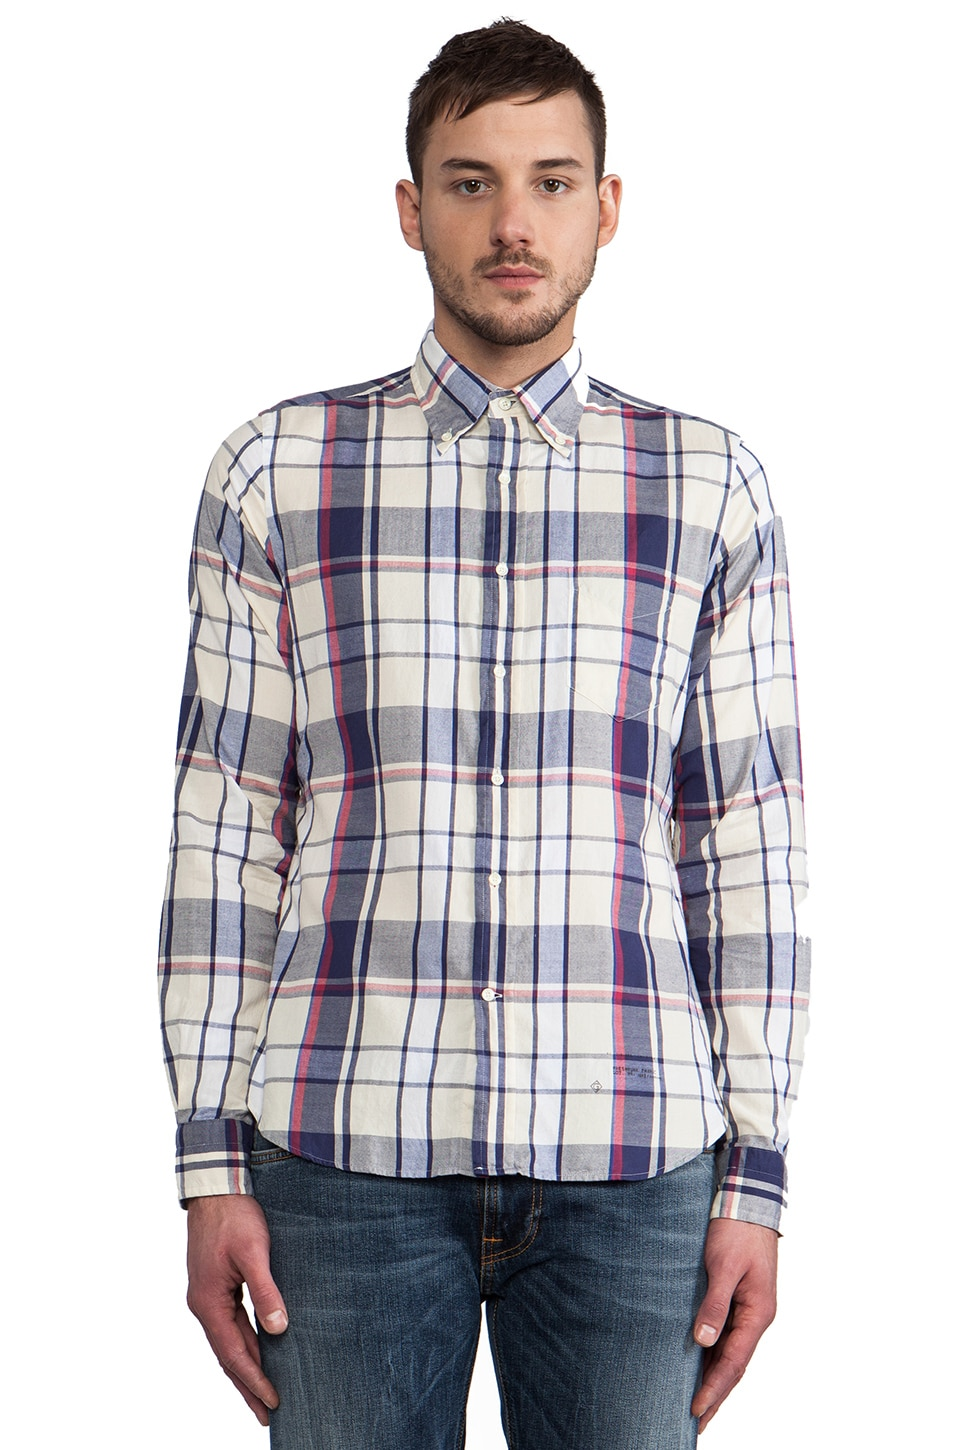 GANT Rugger Windblown Oxford in White & Navy & Red